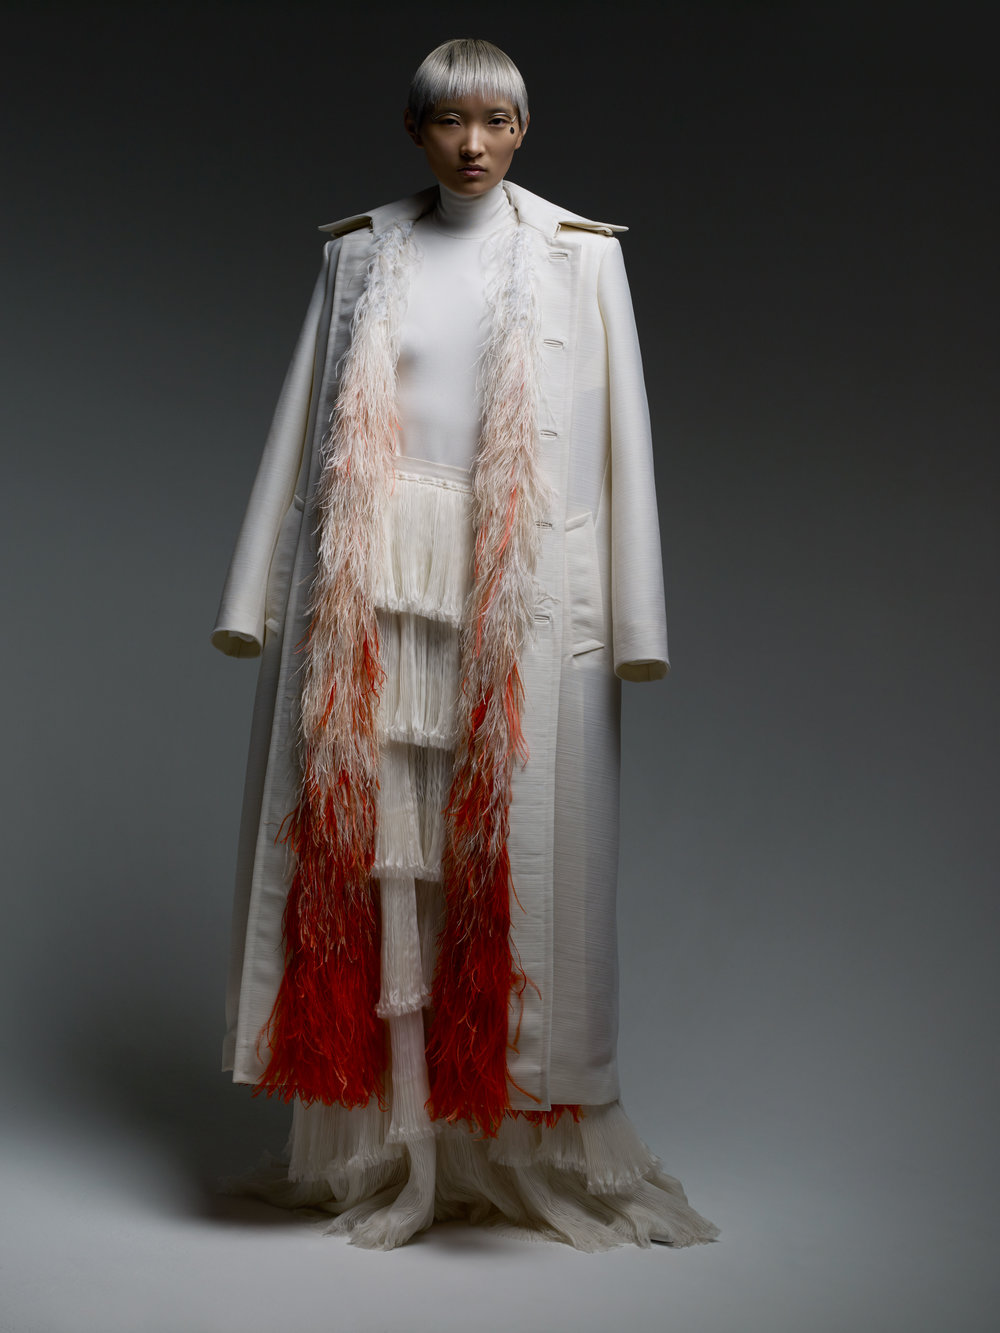 GIVENCHY HAUTE COUTURE coat, bodysuit, and skirt.